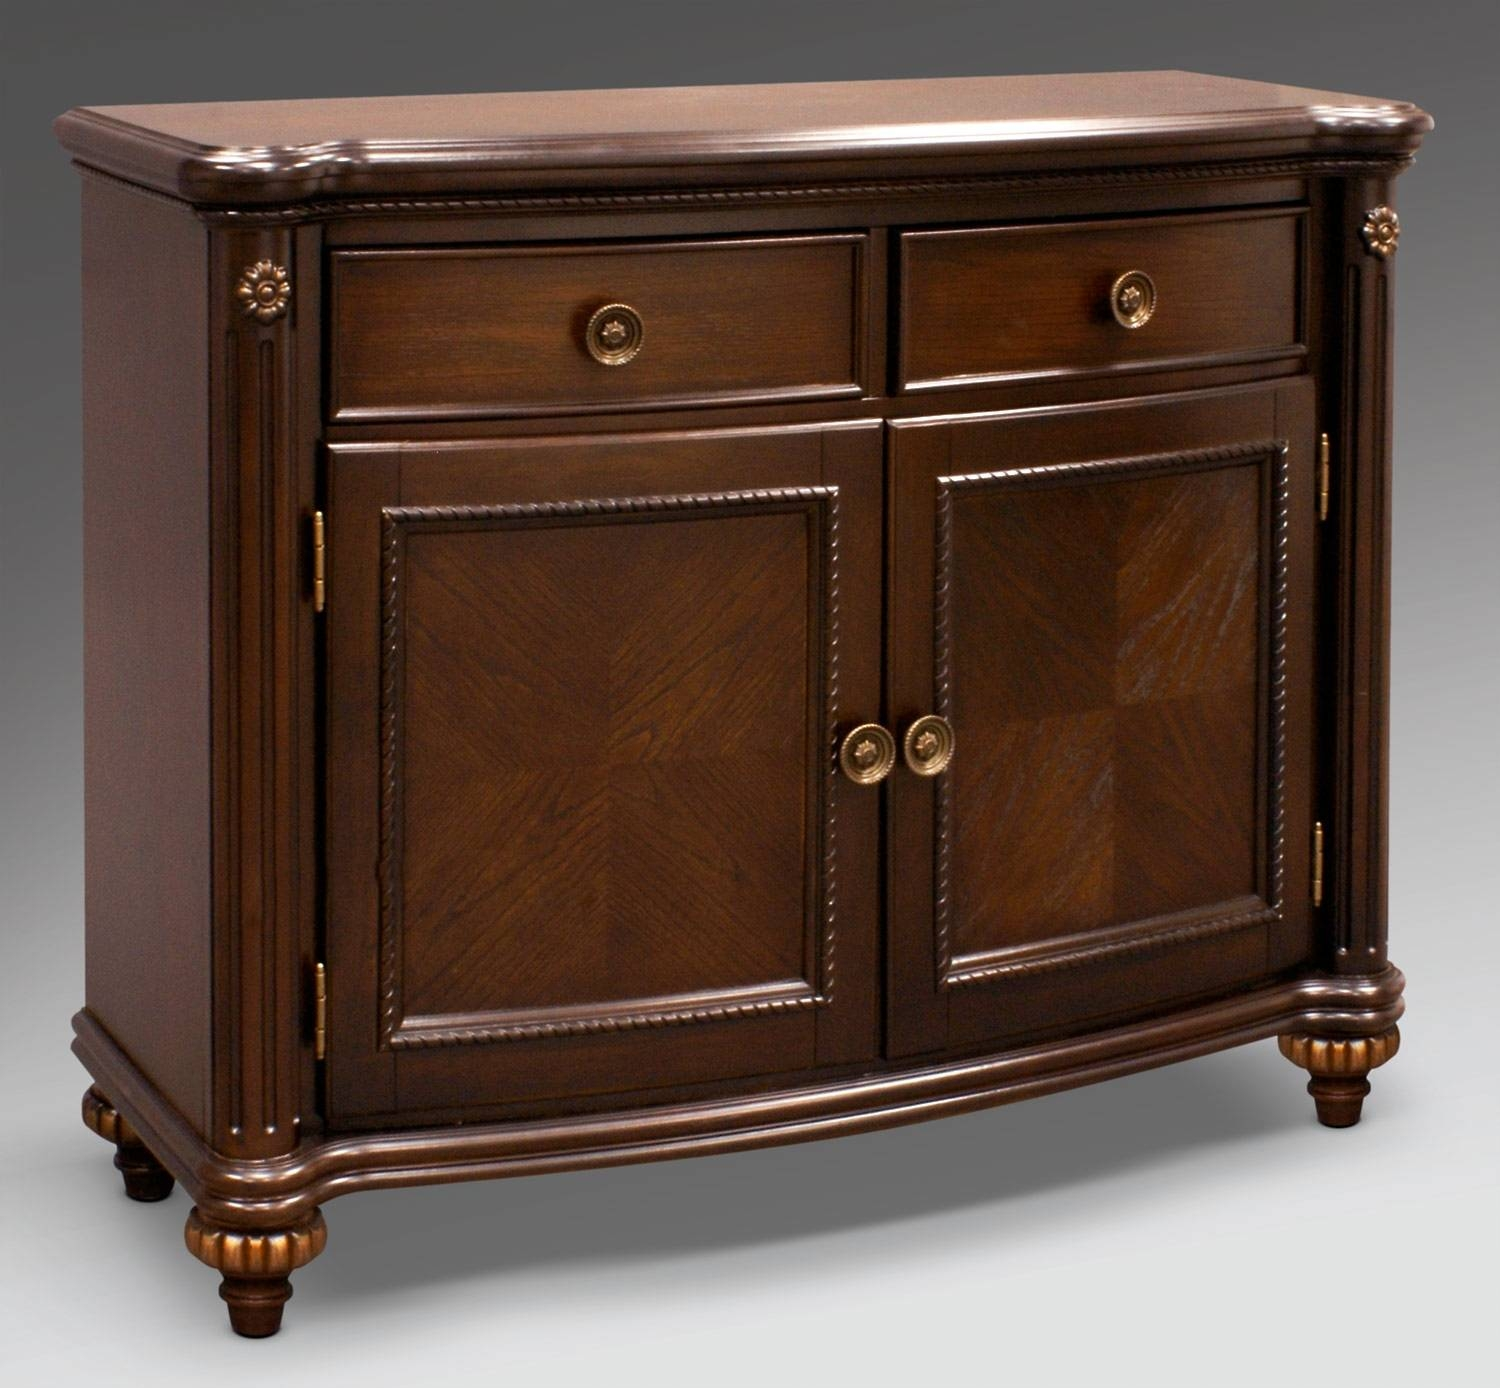 Dining Room Servers Buffet Furniture Pictures Cabinet Trends And Pertaining To Dining Room Sideboards (View 9 of 15)